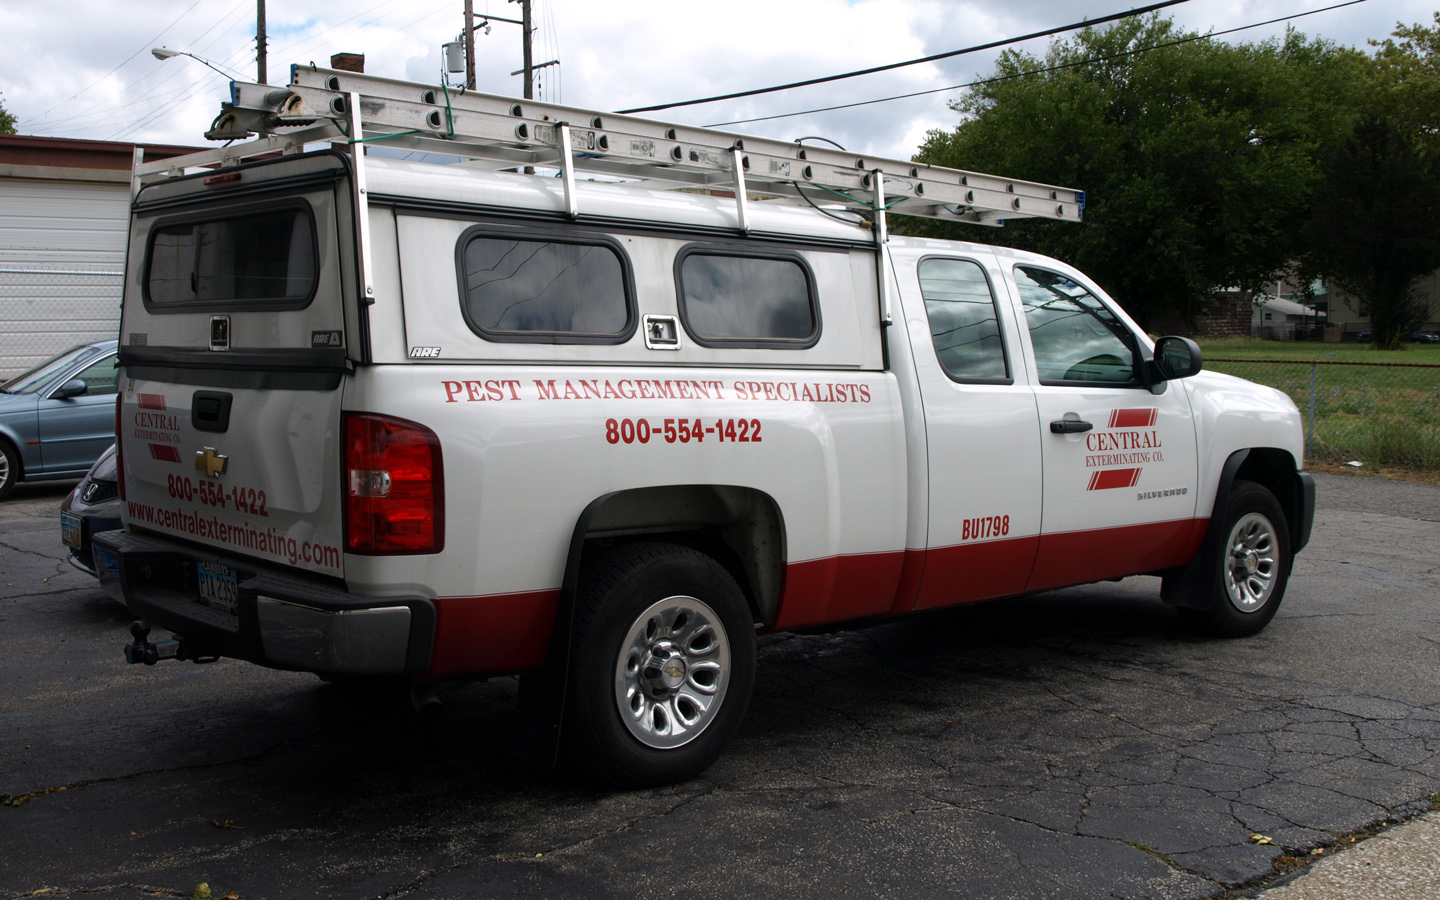 Photo of a Central Exterminating Co. truck.